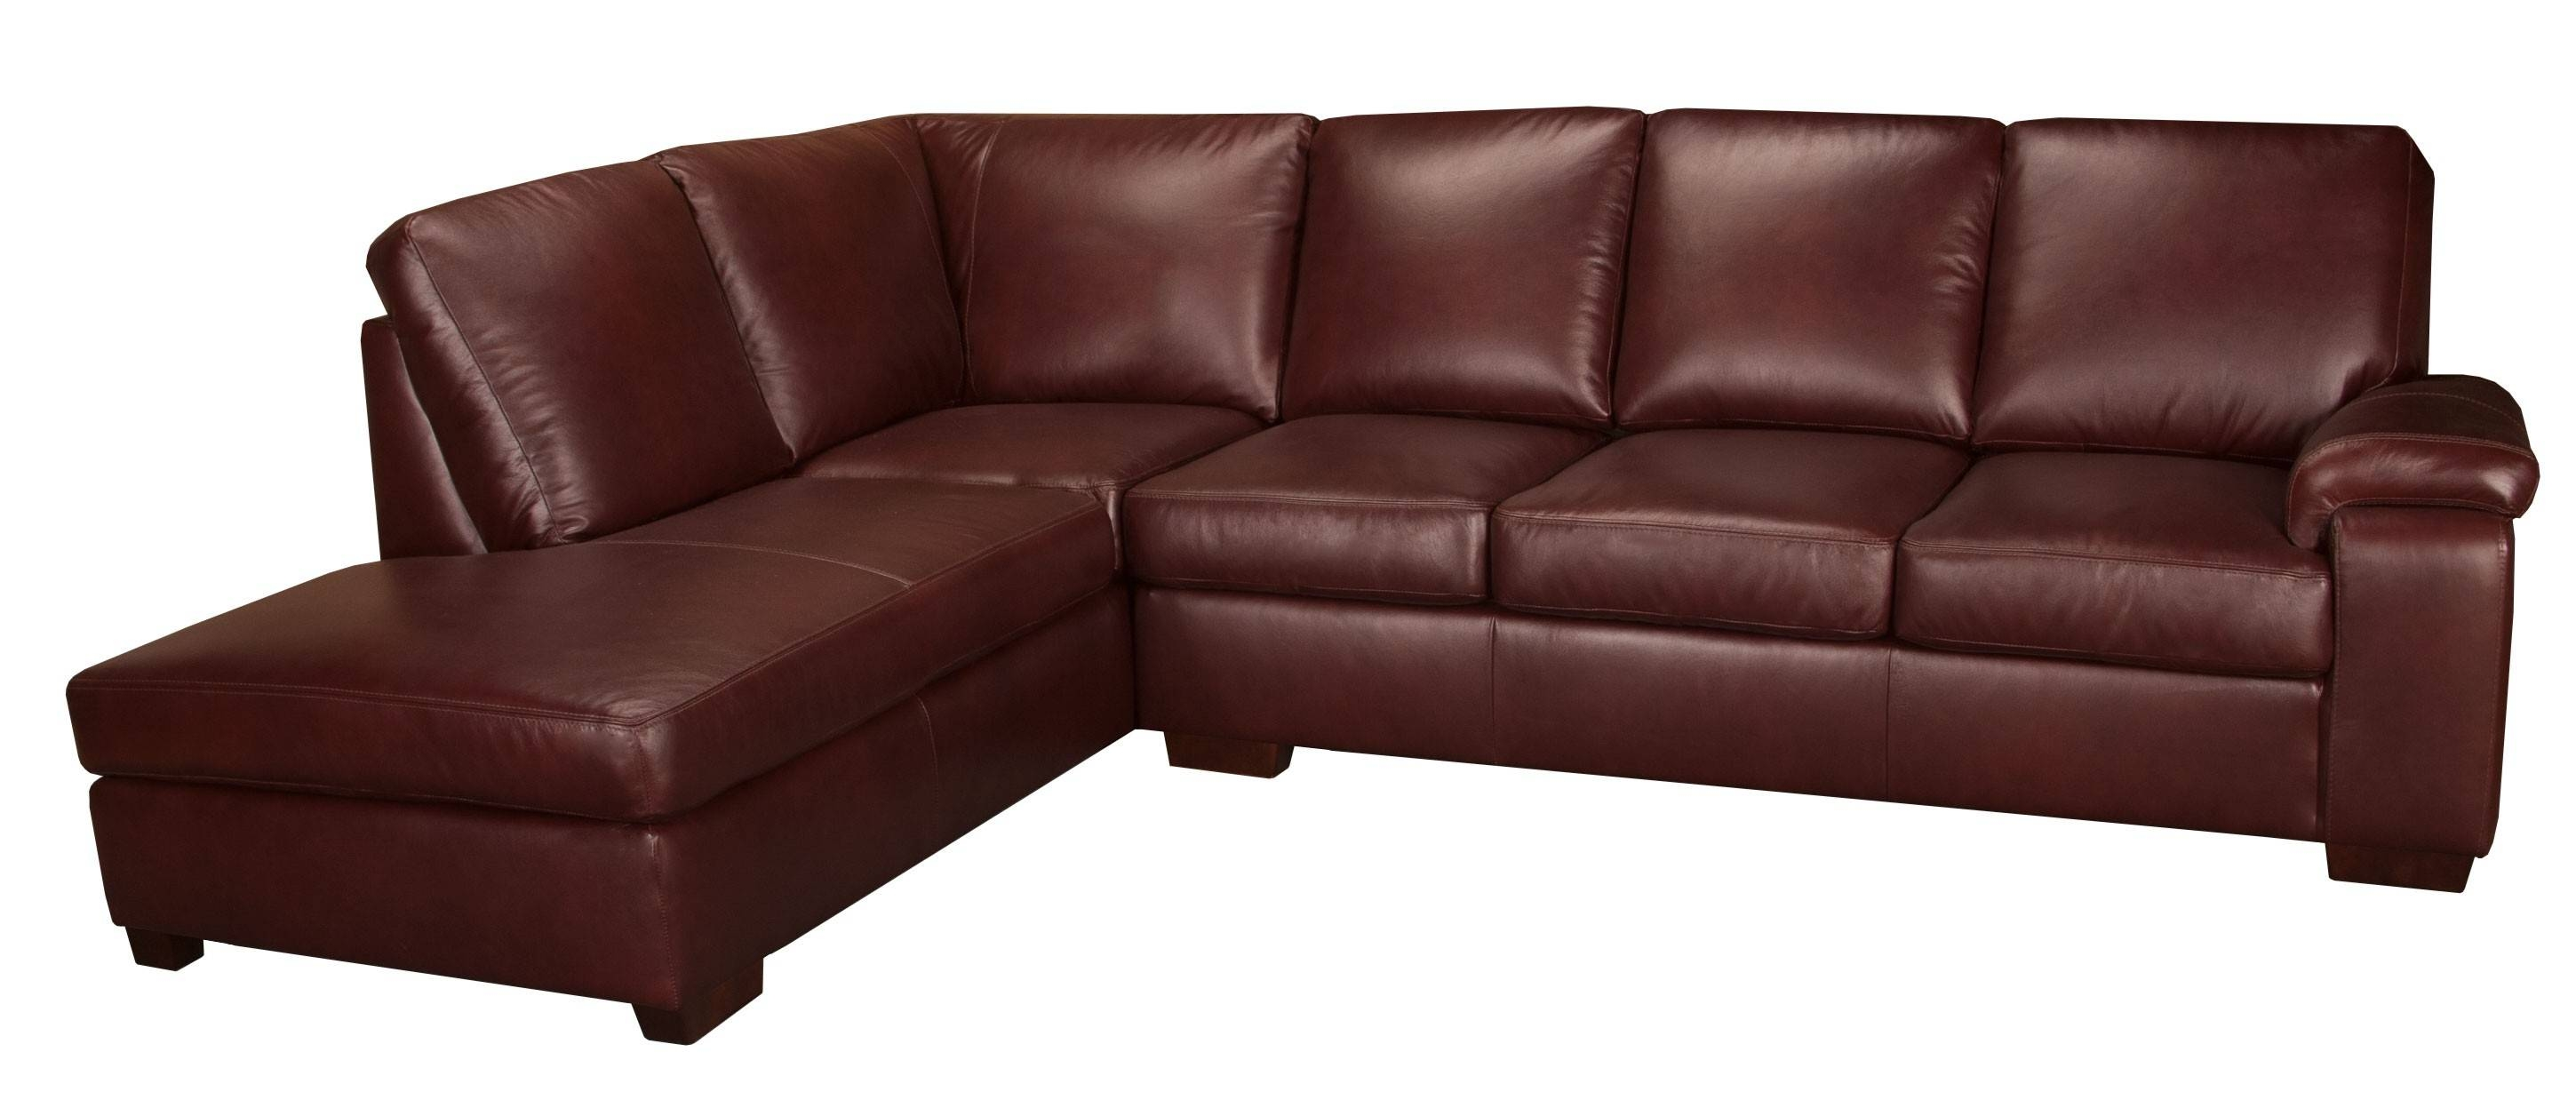 Sectional Sofa Leather Toronto | Tehranmix Decoration throughout Leather Sectional Sofas Toronto (Image 14 of 25)